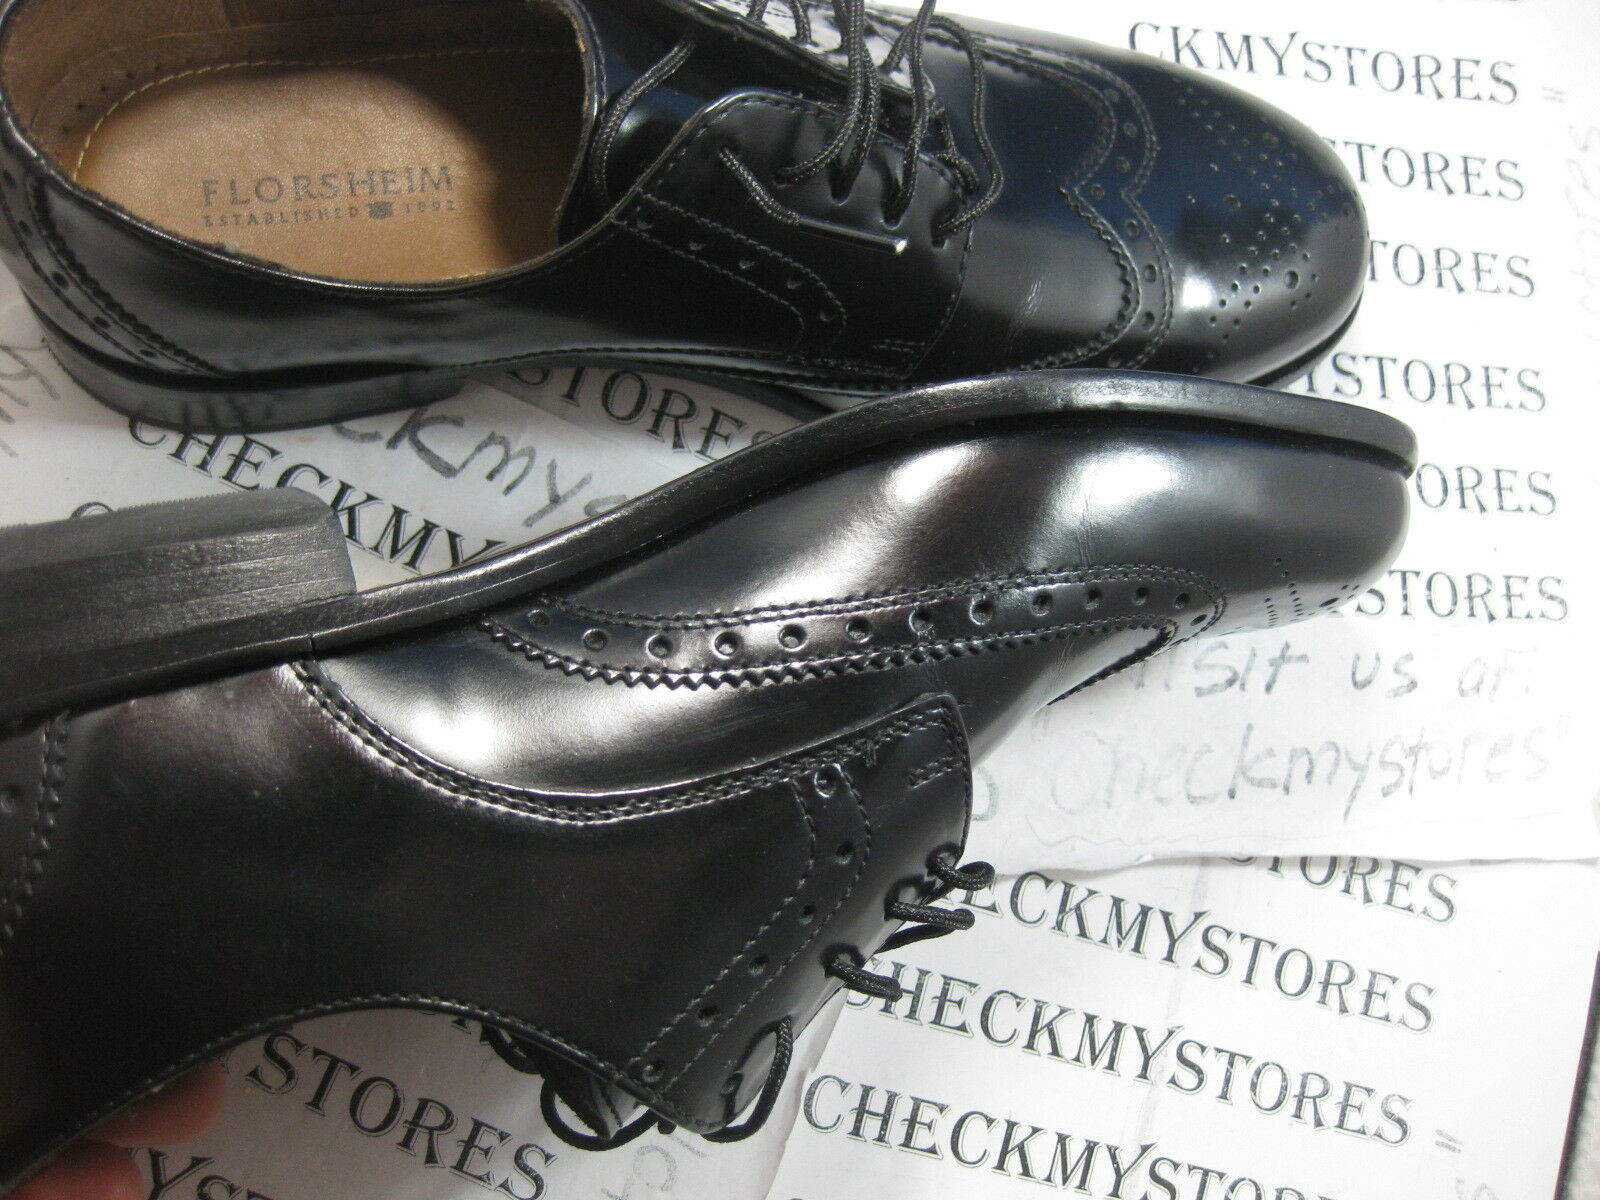 NEW Florsheim 11231 001 Brookside Genuine Leather Premium oxford oxford oxford 15410f